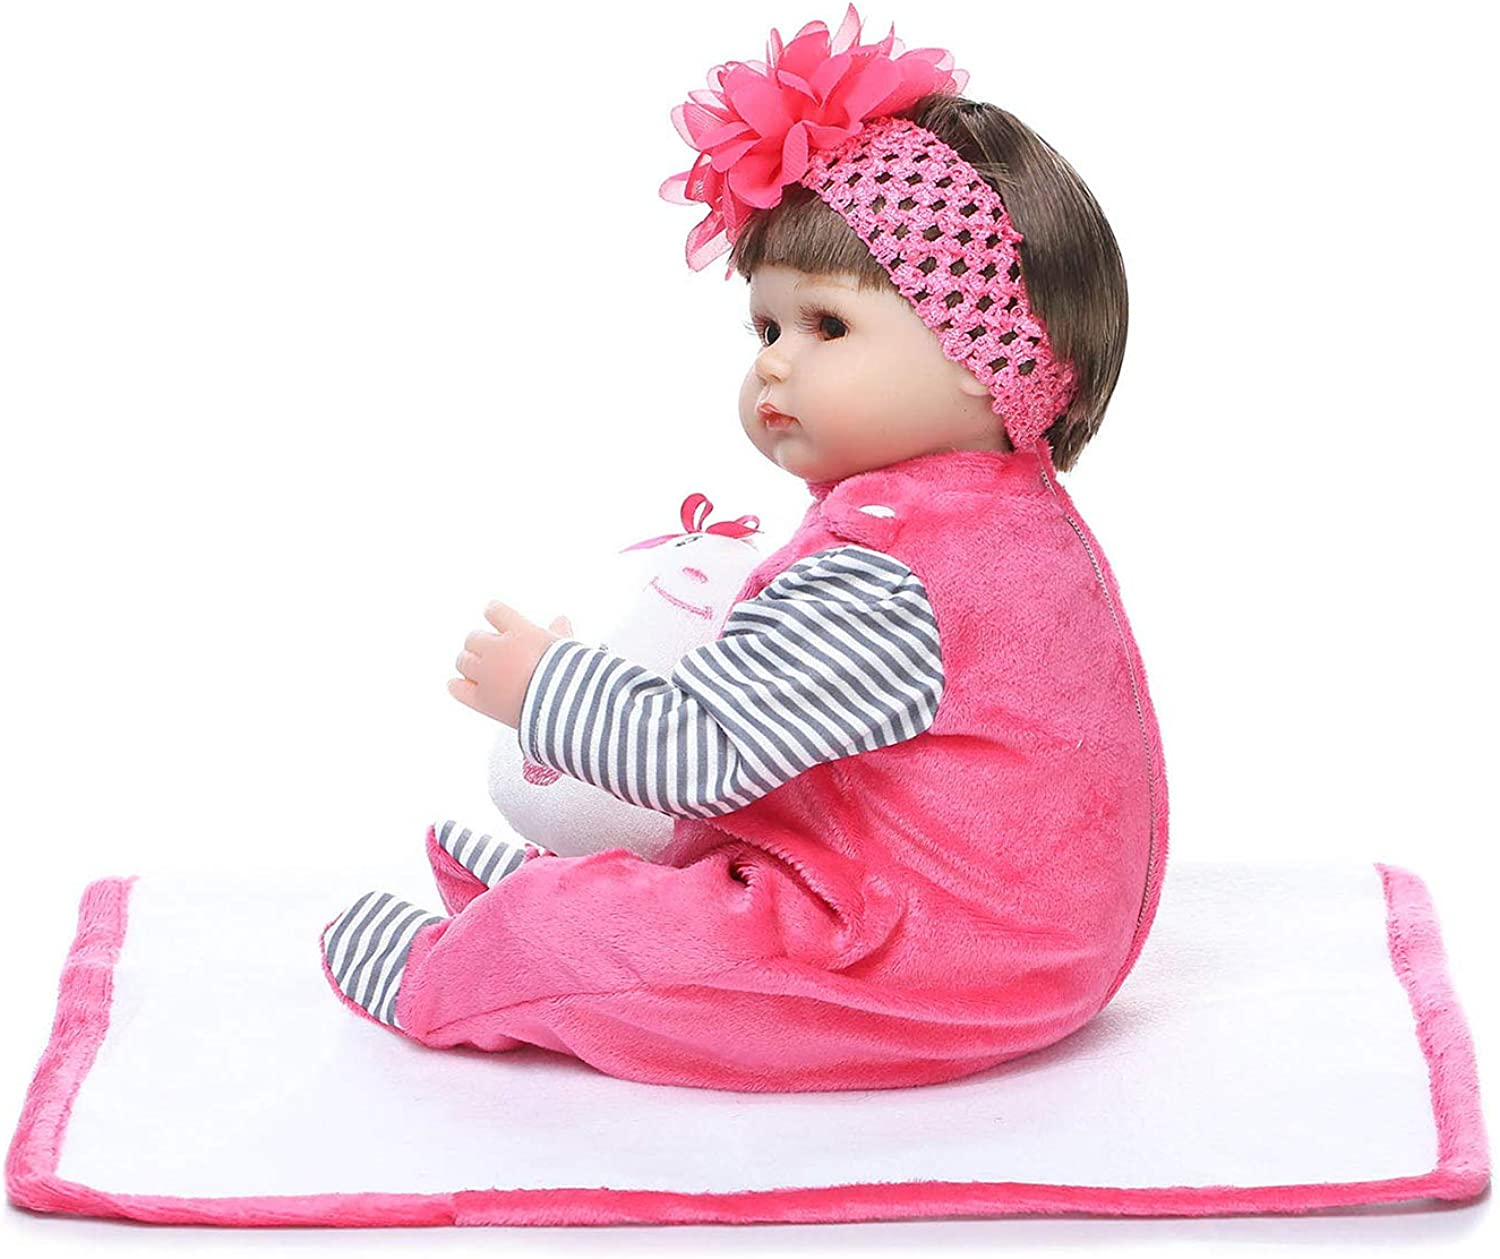 AuchSo Silicone Doll, Soft Realistic Look Safe Nontoxic for Baby Girl Baby Companion Toy for Baby Girl Gift